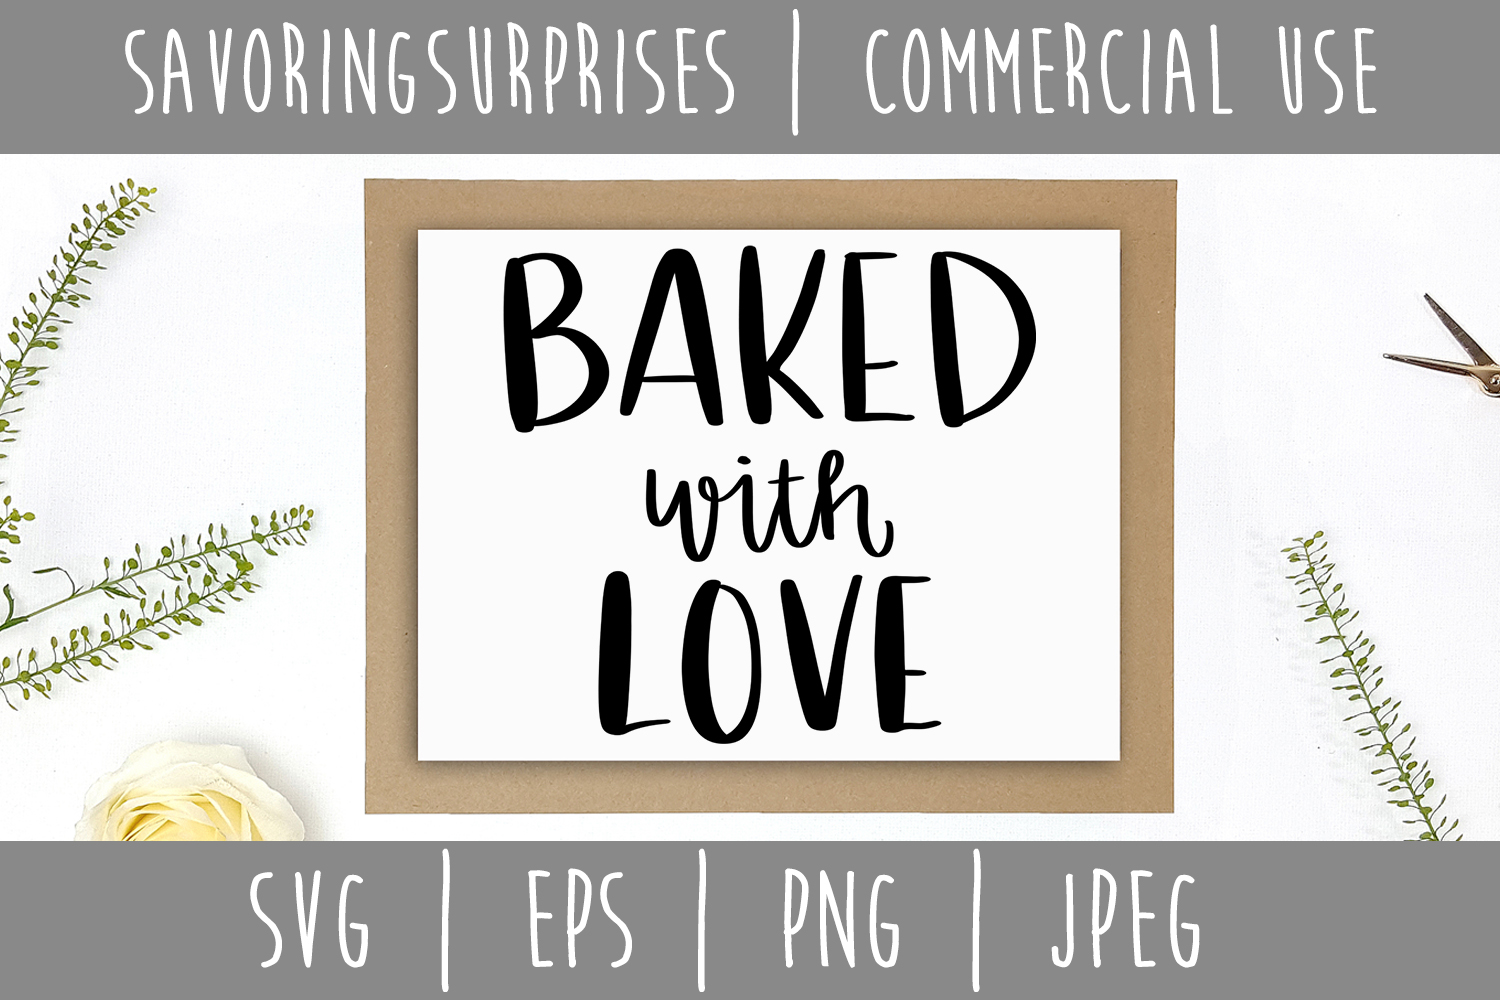 Download Free Baked With Love Svg Graphic By Savoringsurprises Creative Fabrica for Cricut Explore, Silhouette and other cutting machines.